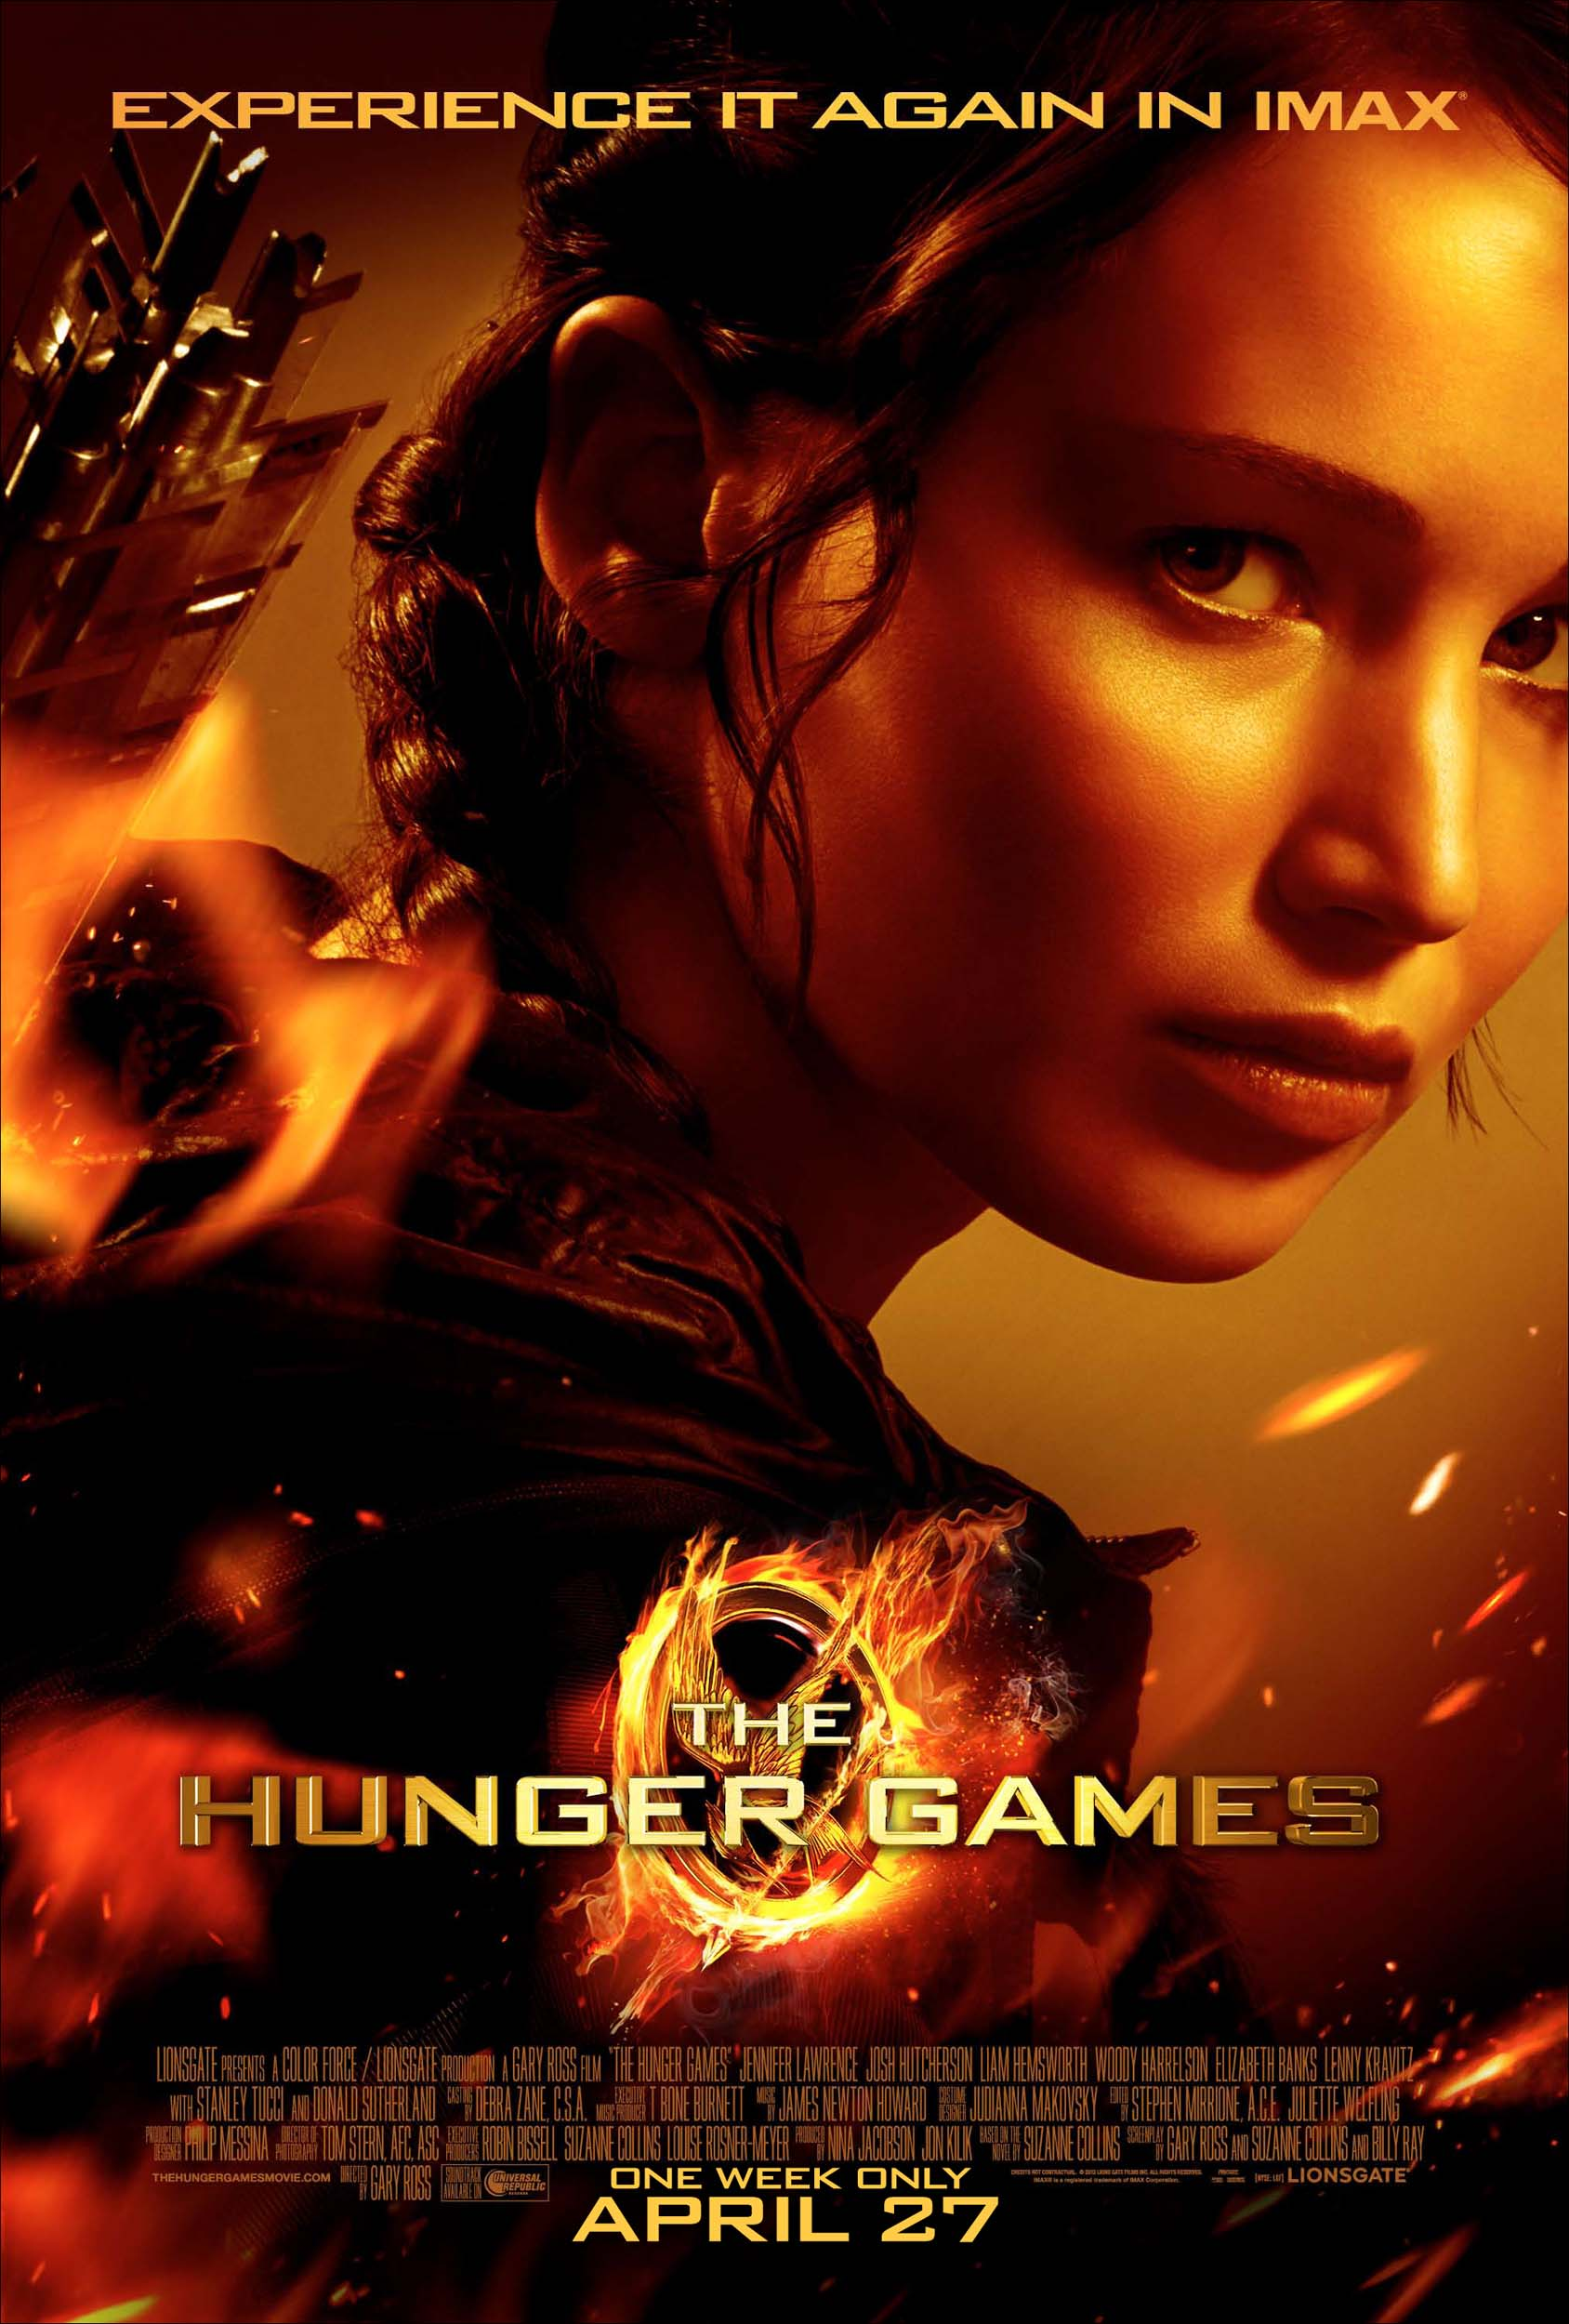 The Hunger Games (2012) | Movies, Films & Flix